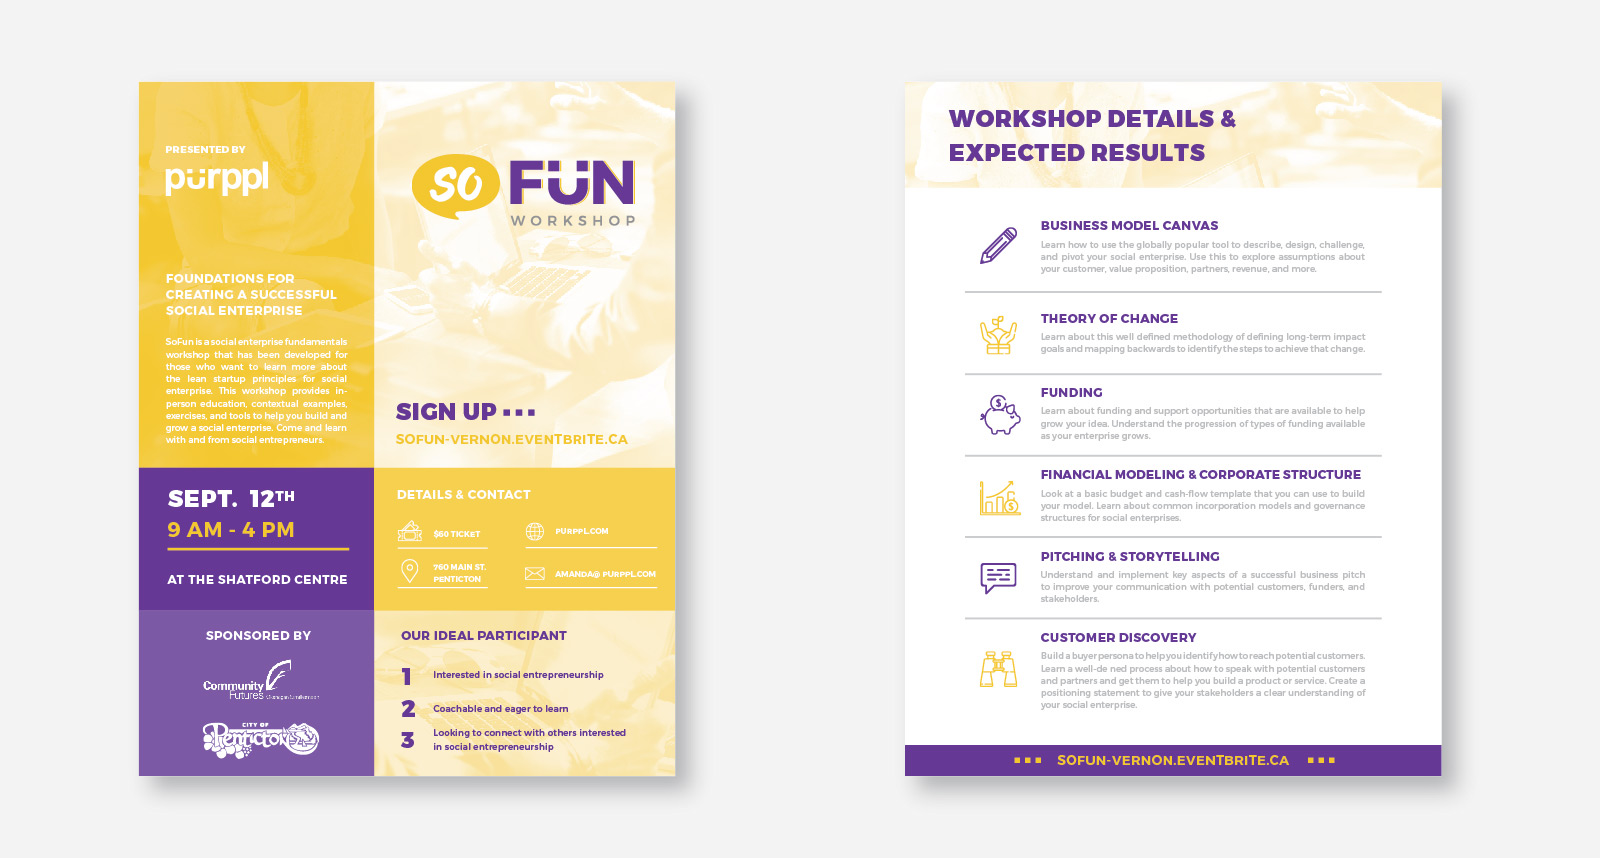 Purppl SoFun Workshop Print Assets created by Catalyst Marketing